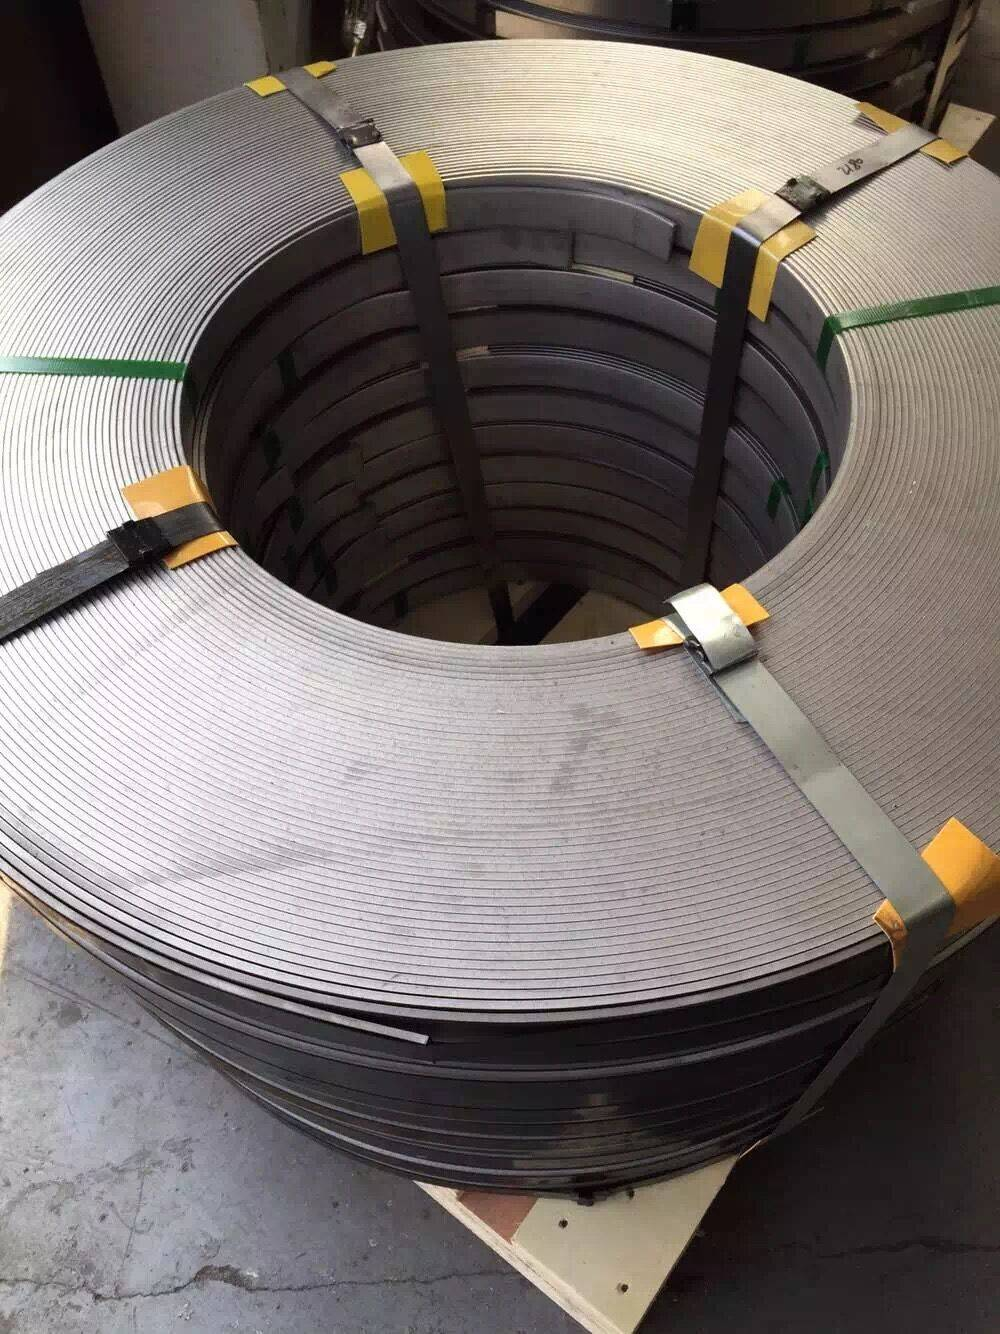 AISI 410 hot rolled stainless steel round bars, dia 6mm